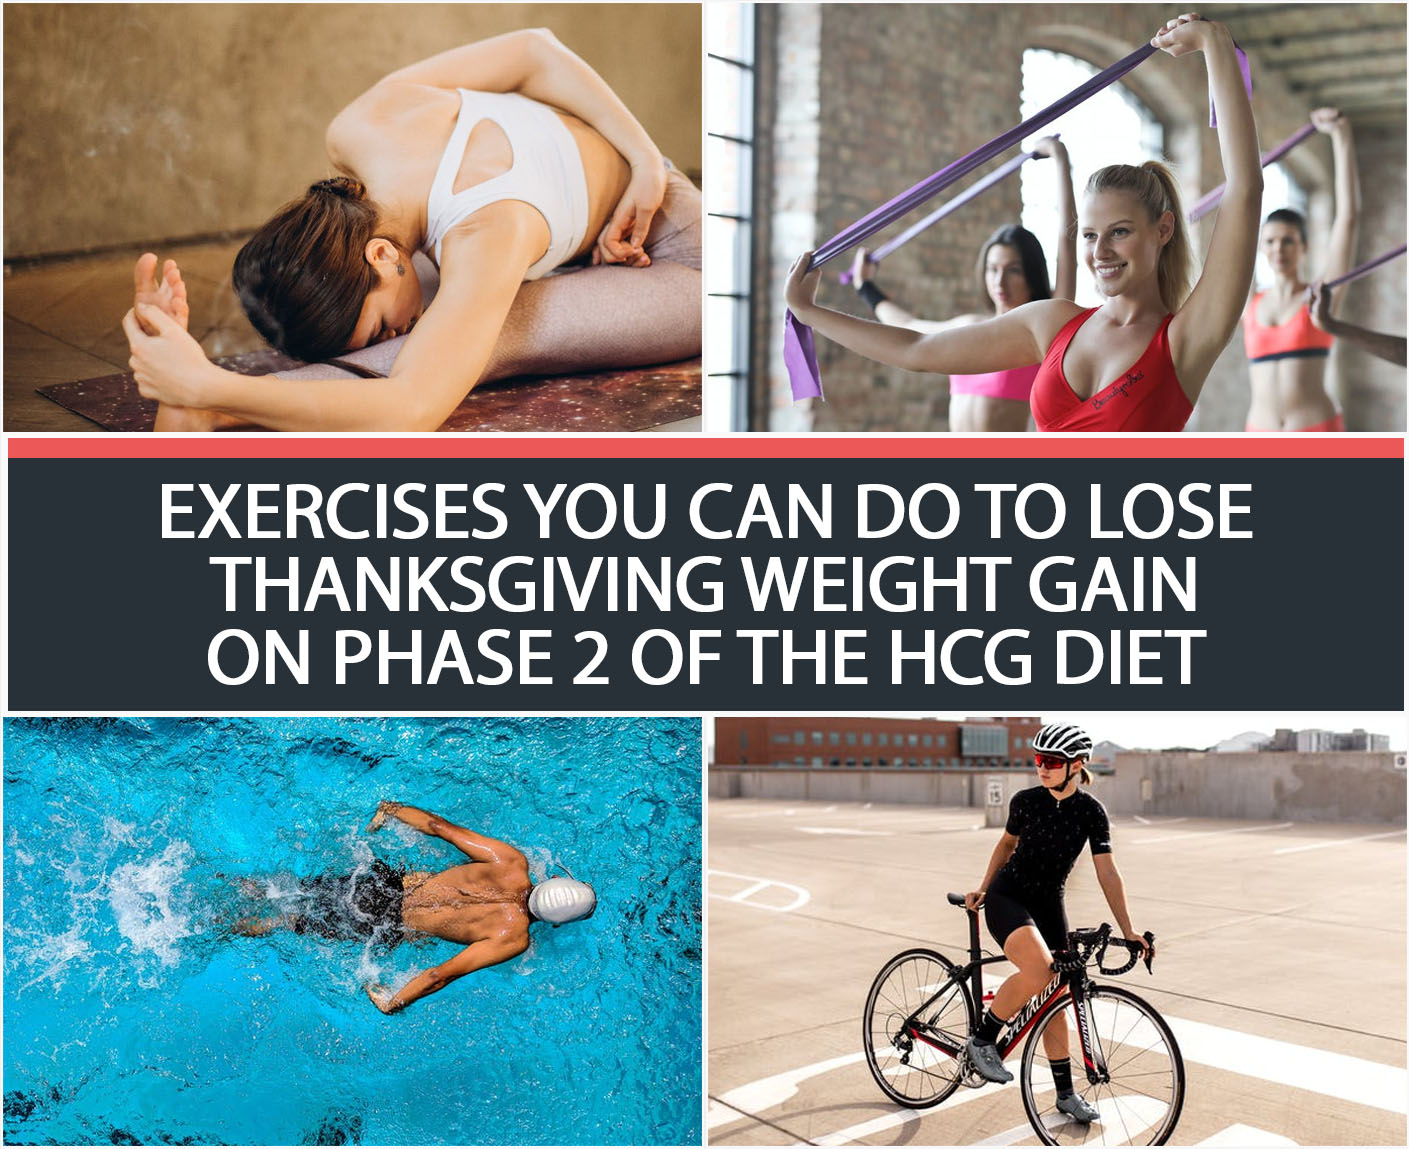 EXERCISES YOU CAN DO TO LOSE THANKSGIVING WEIGHT GAIN ON PHASE 2 OF THE HCG DIET